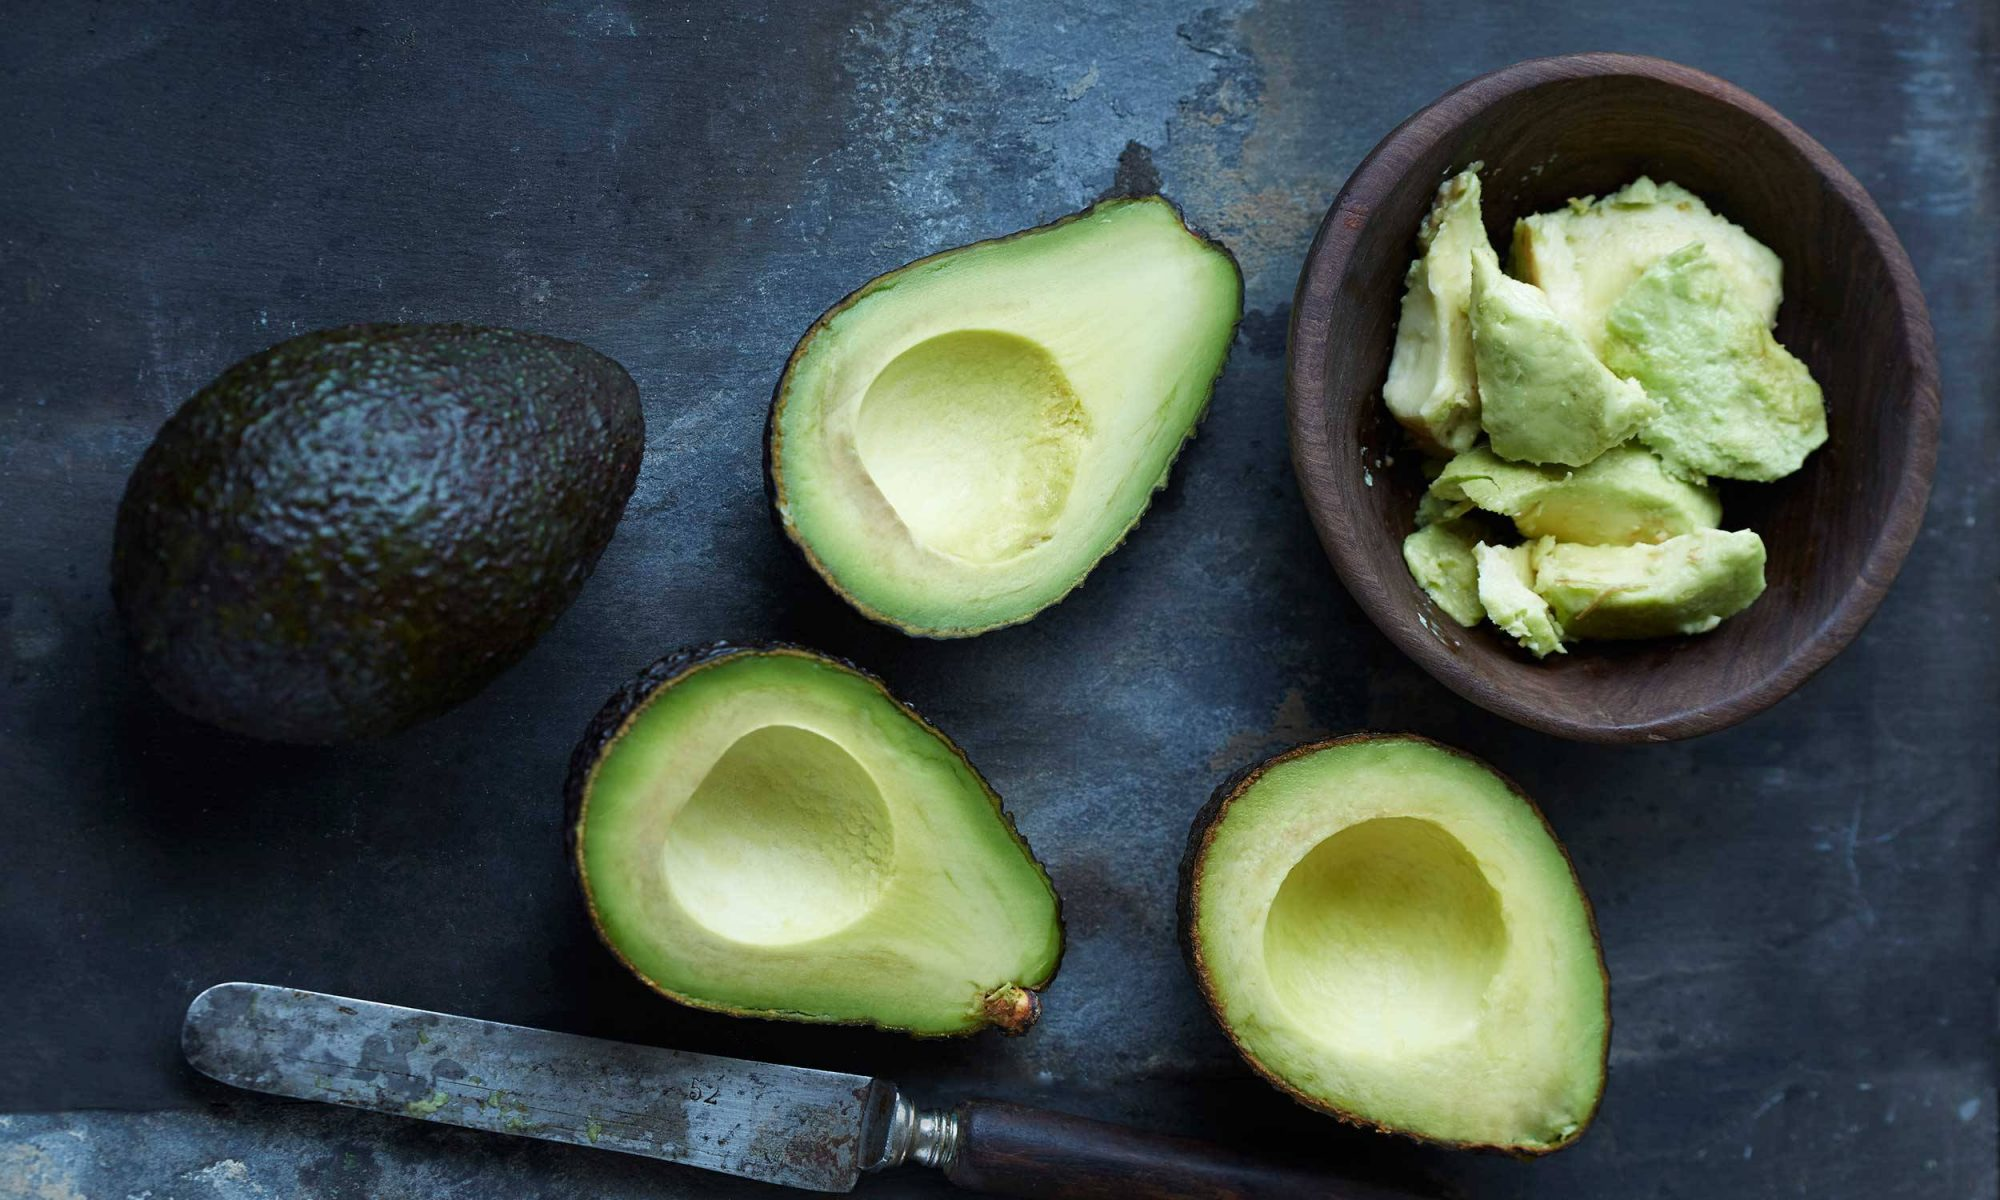 Whole, cut, and mashed avocado on a dark background